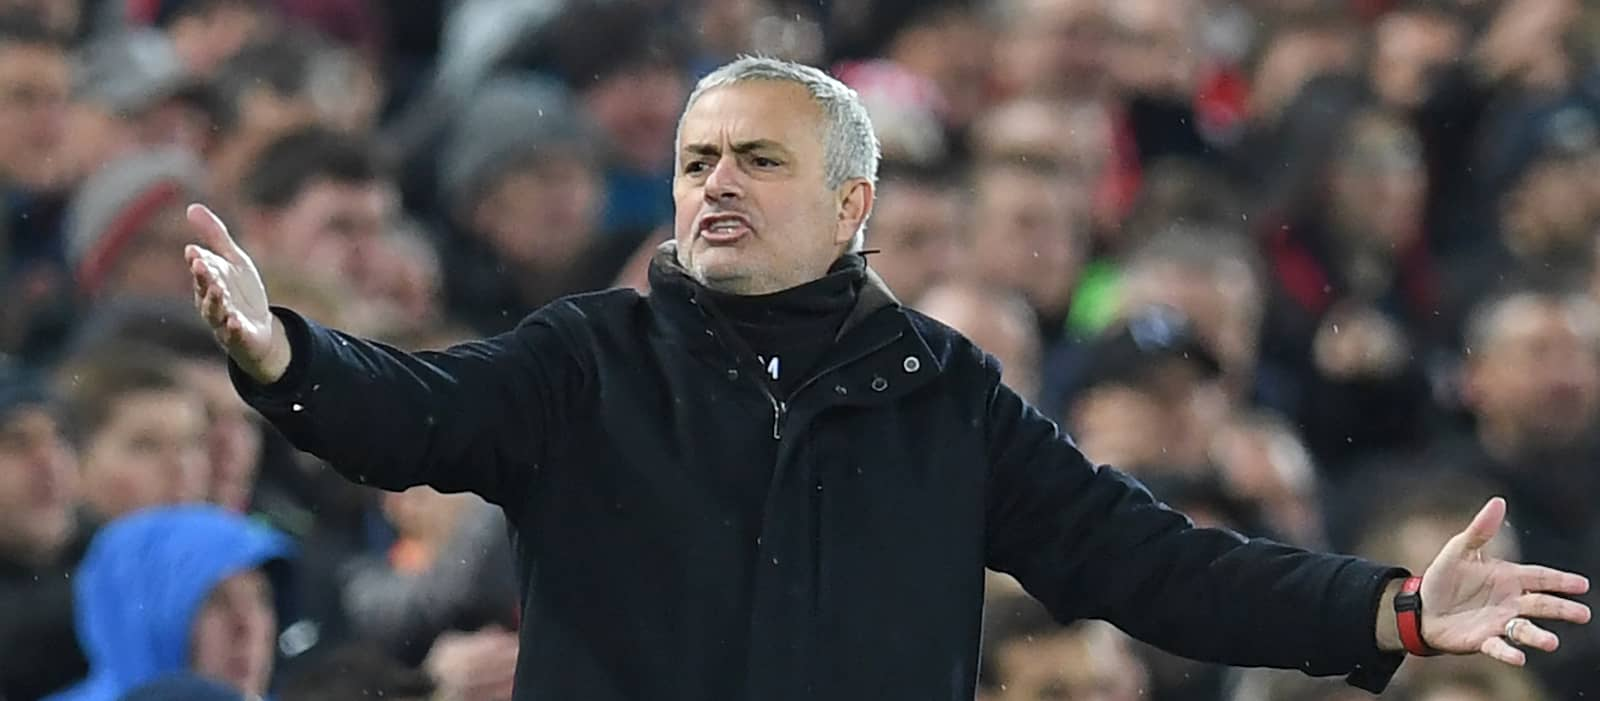 Jose Mourinho insists Liverpool were fortunate to beat Manchester United